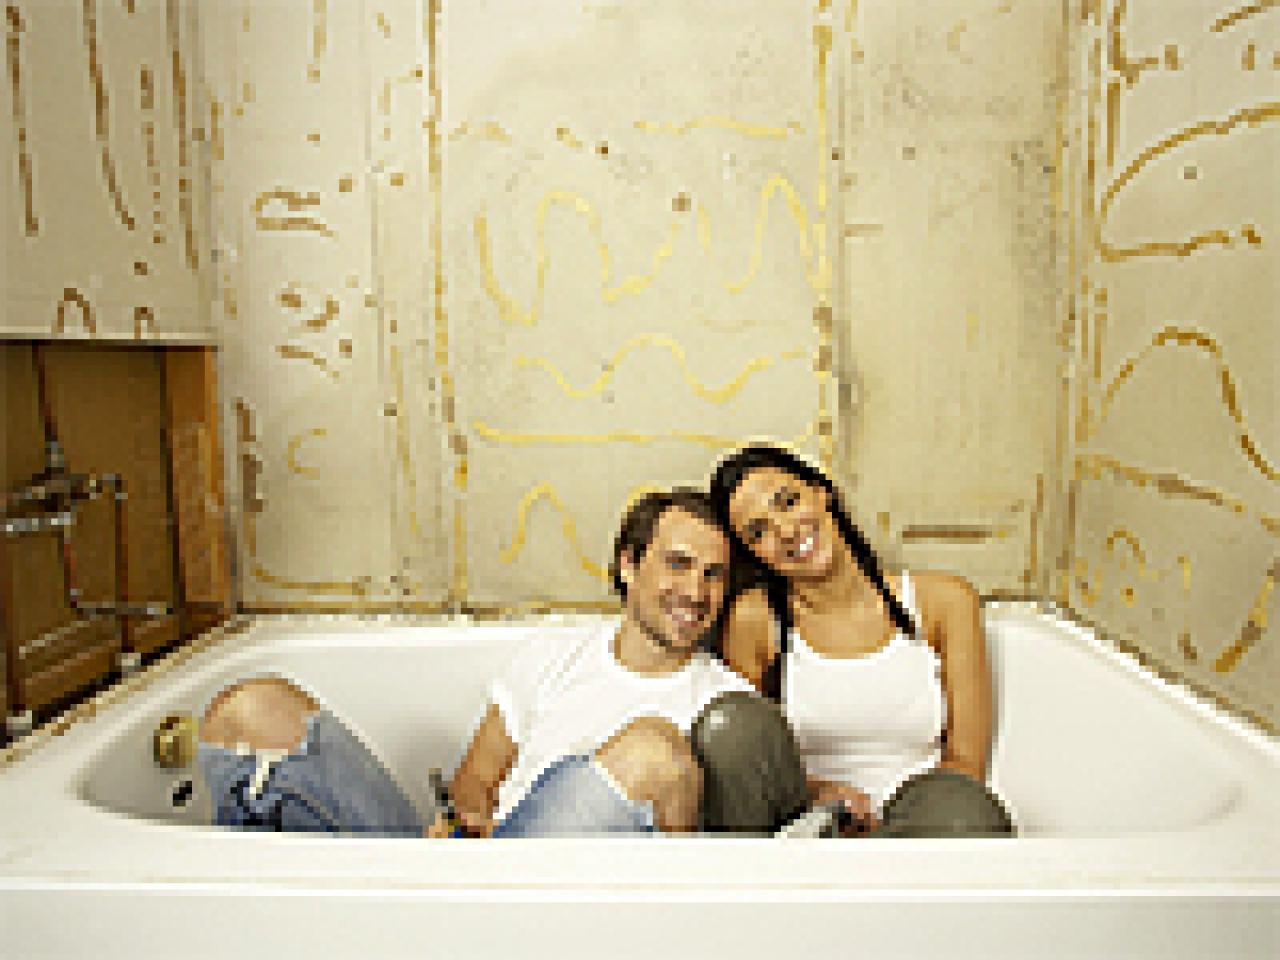 Budgeting Your Bathroom Renovation HGTV - How much would a bathroom remodel cost for bathroom decor ideas